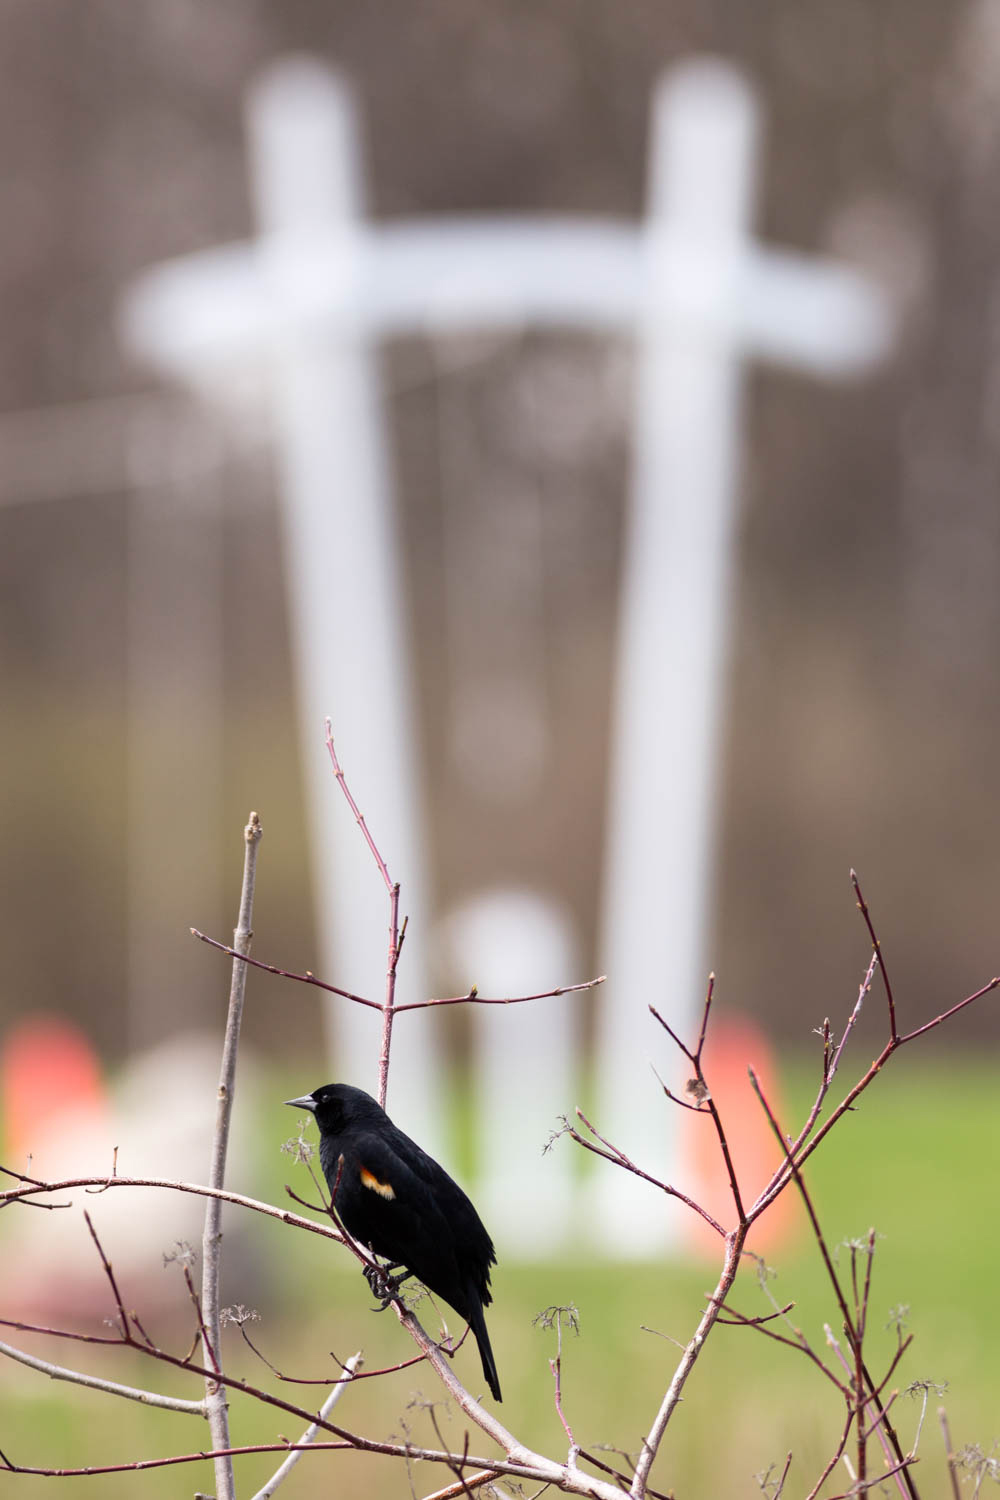 The playground pi poles at Lederman Science Center are visible behind a red-winged blackbird. Photo: Jesus Orduna, Brown University